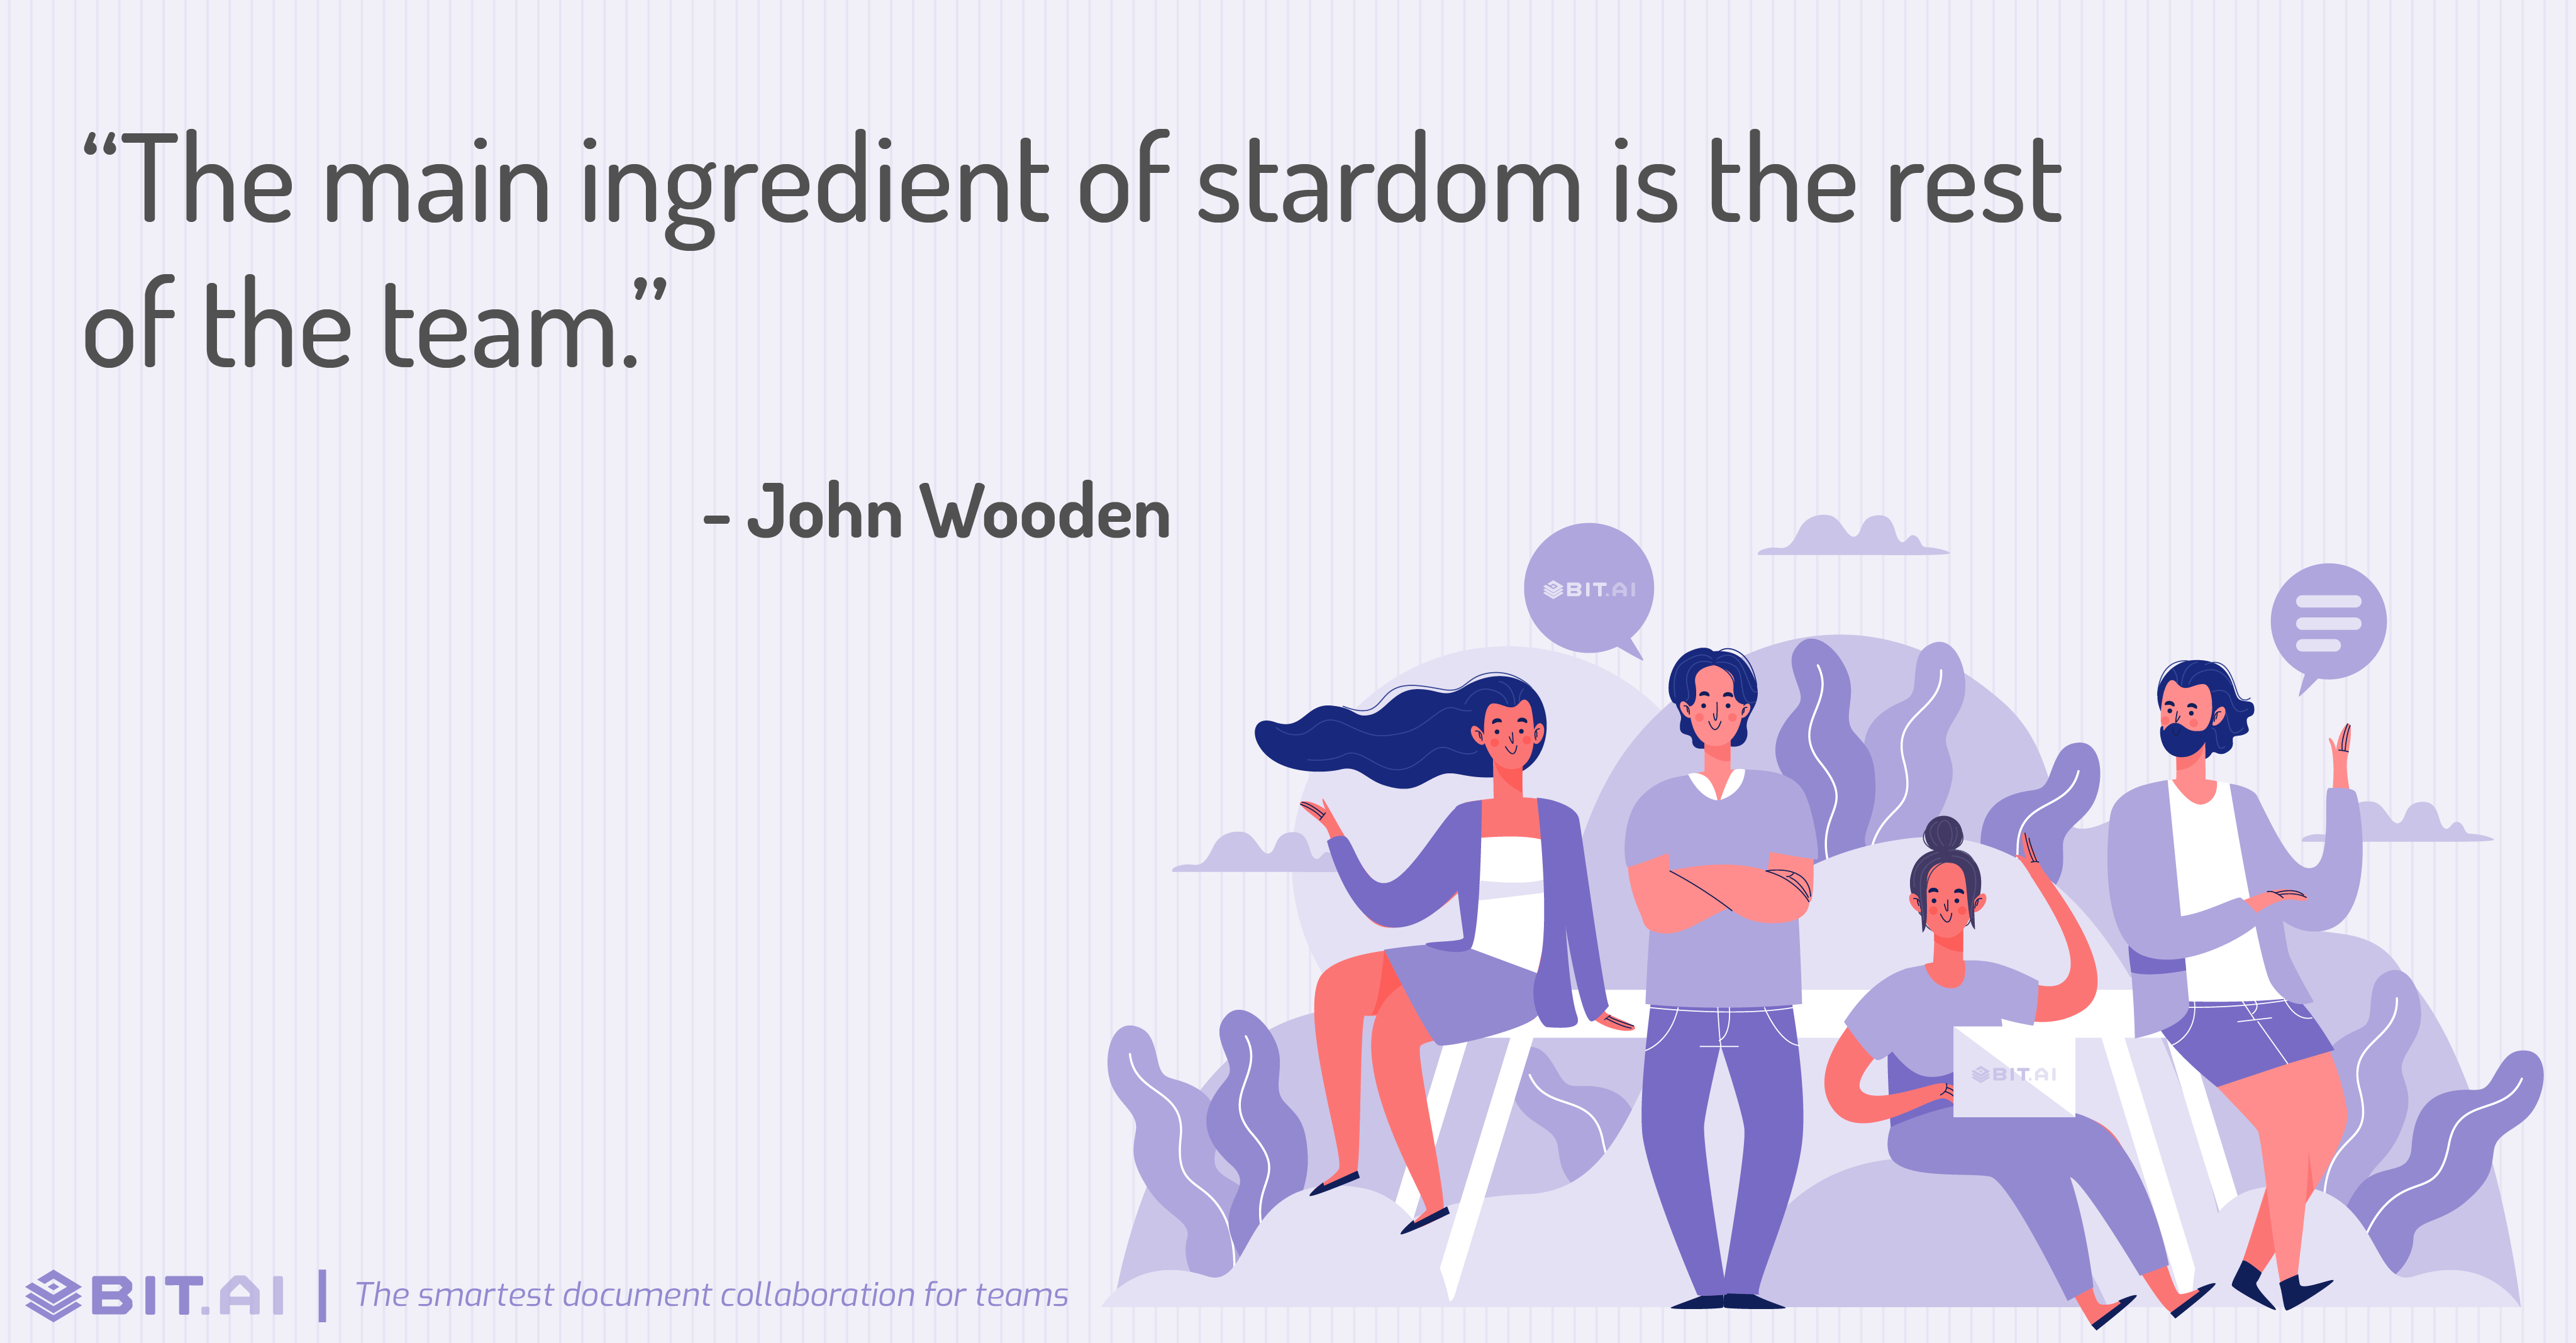 """The main ingredient of stardom is the rest of the team."" - John Wooden"